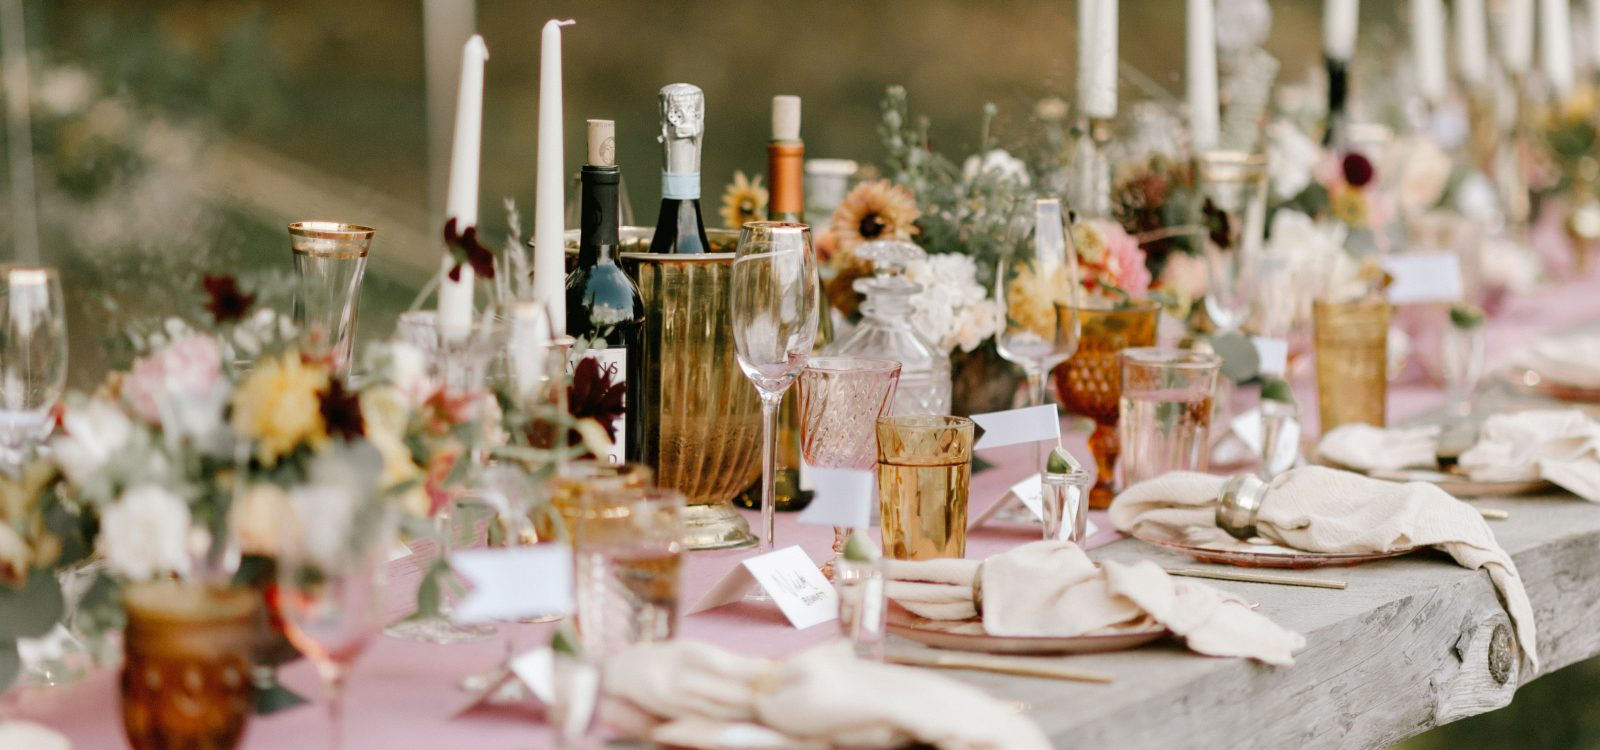 Whidbey Island backyard wedding flowers by Tobey Nelson Events image by Carina Skrobecki Photography (63)